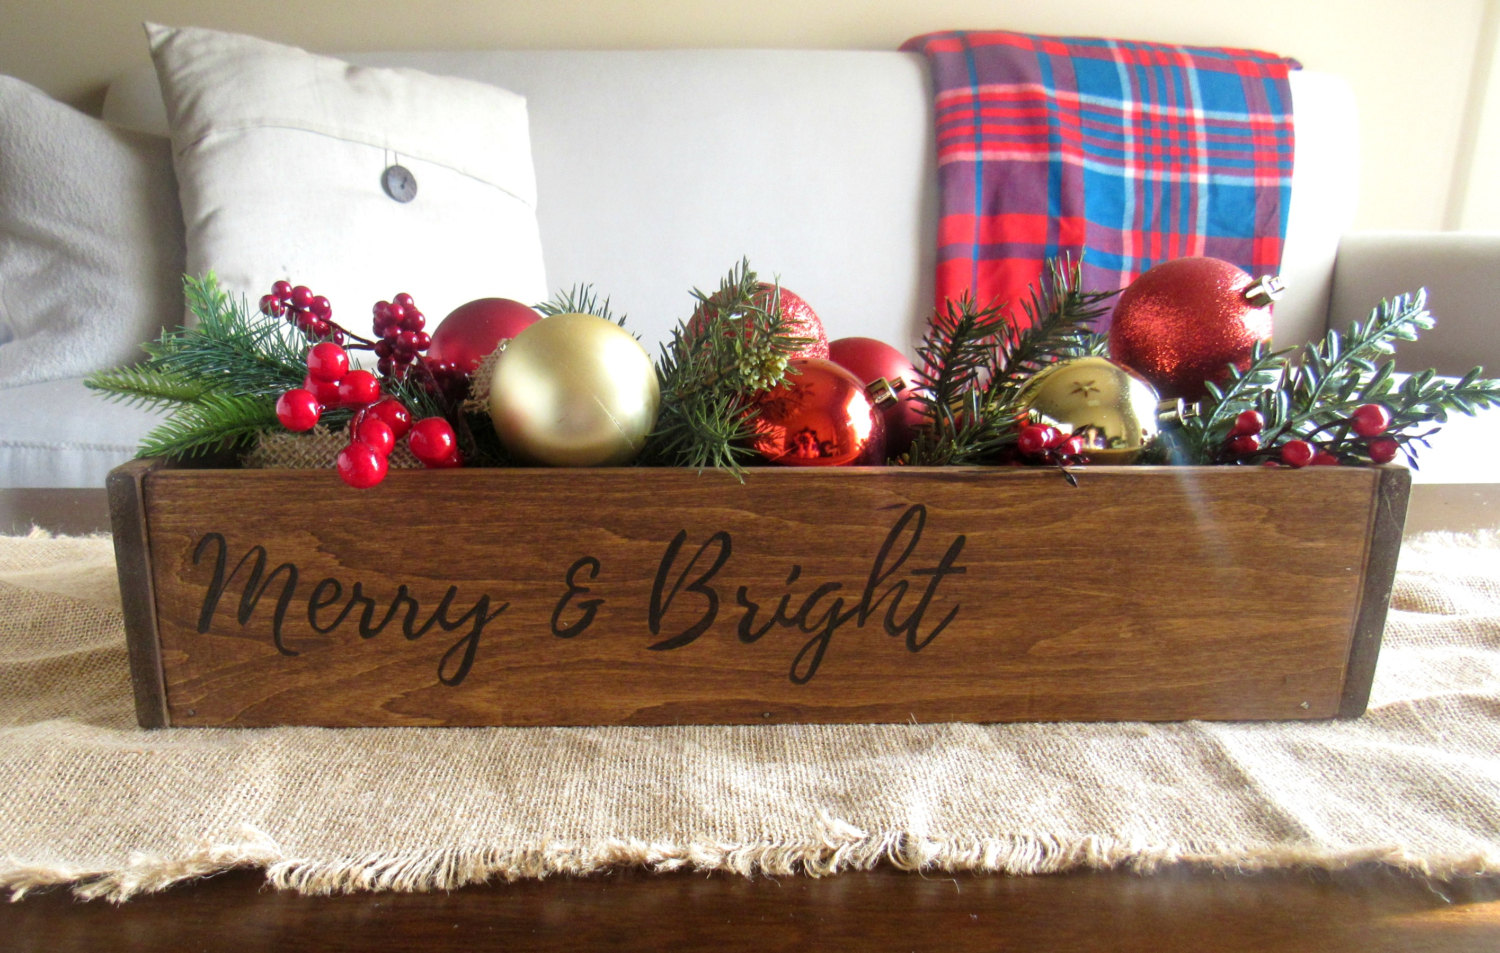 Michigan Gift Idea: Handmade Home Decor From Wood By Al // Featured - Merry & Bright Trough Centerpiece (via Wading in Big Shoes)